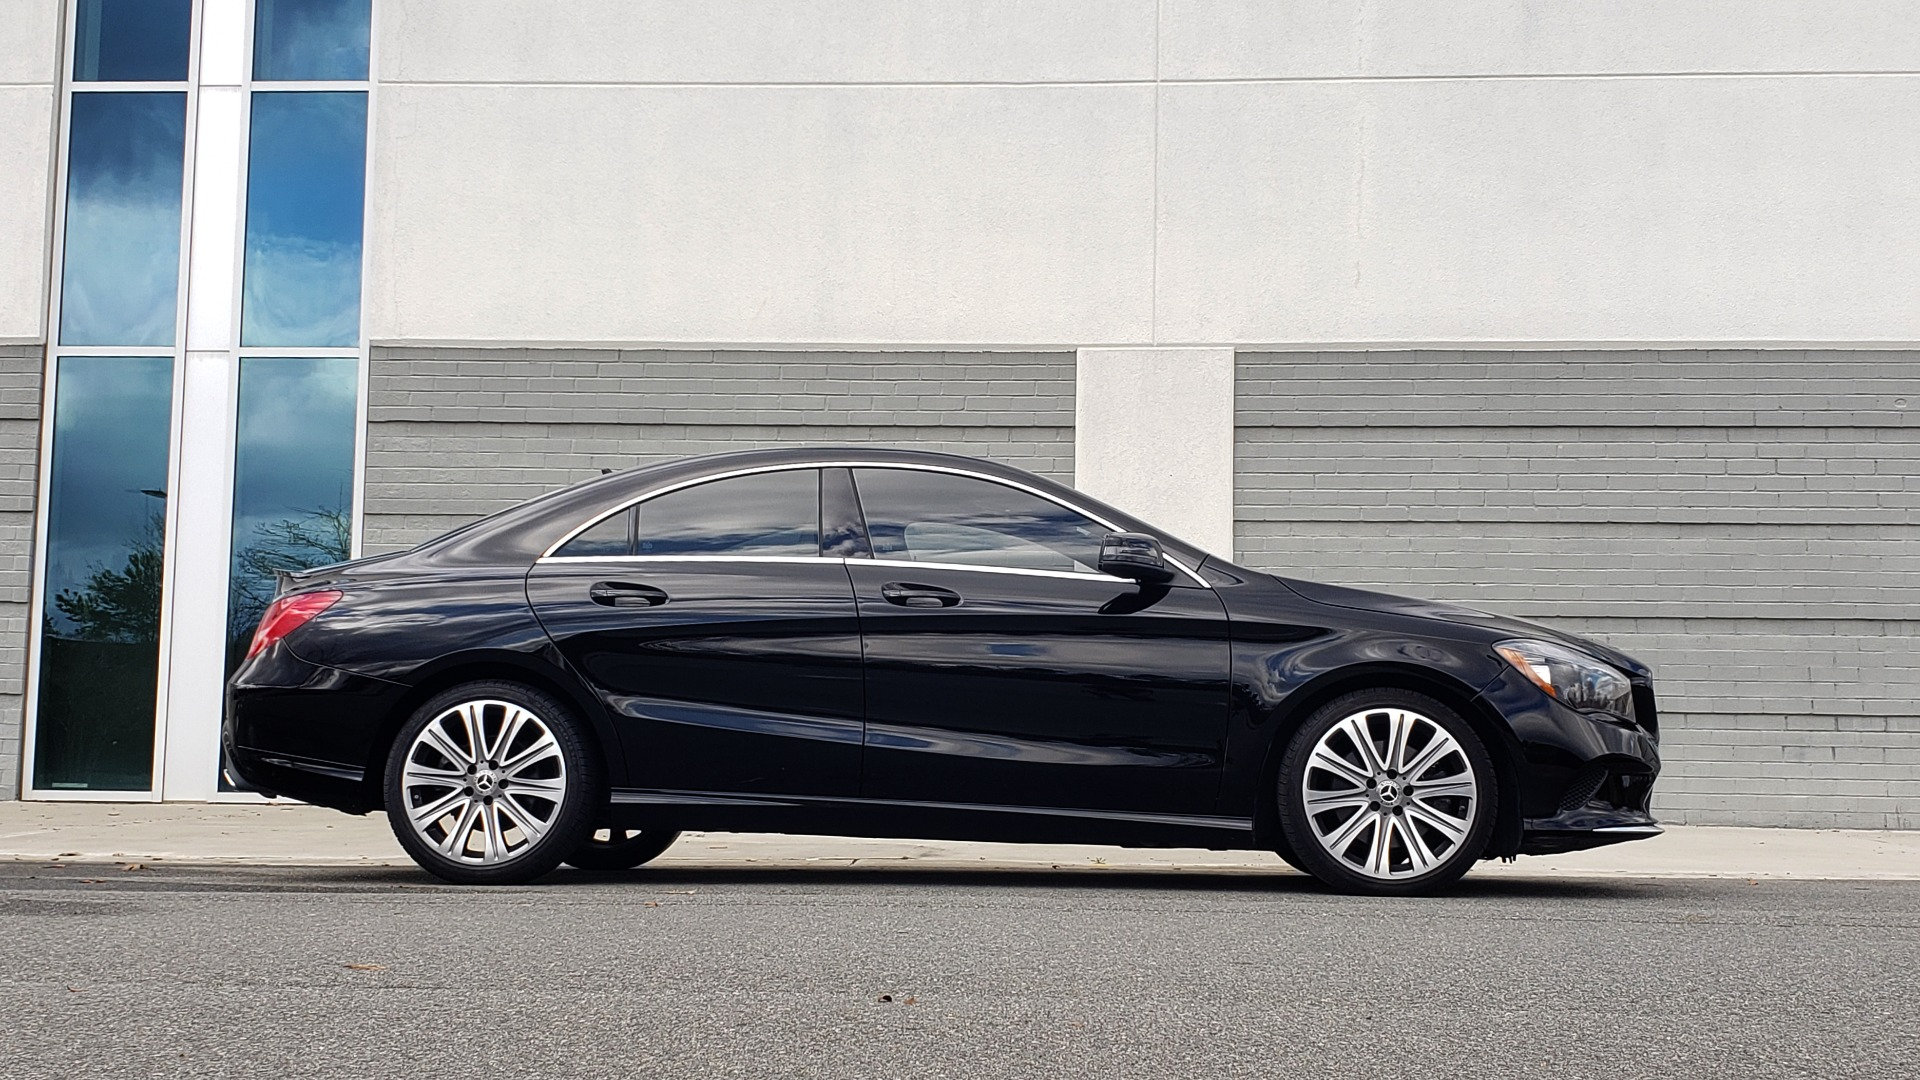 Used 2018 Mercedes-Benz CLA 250 / HEATED SEATS / BSA / APPLE CARPLAY / ANDROID AUTO / 18IN WHEEL for sale $24,195 at Formula Imports in Charlotte NC 28227 5